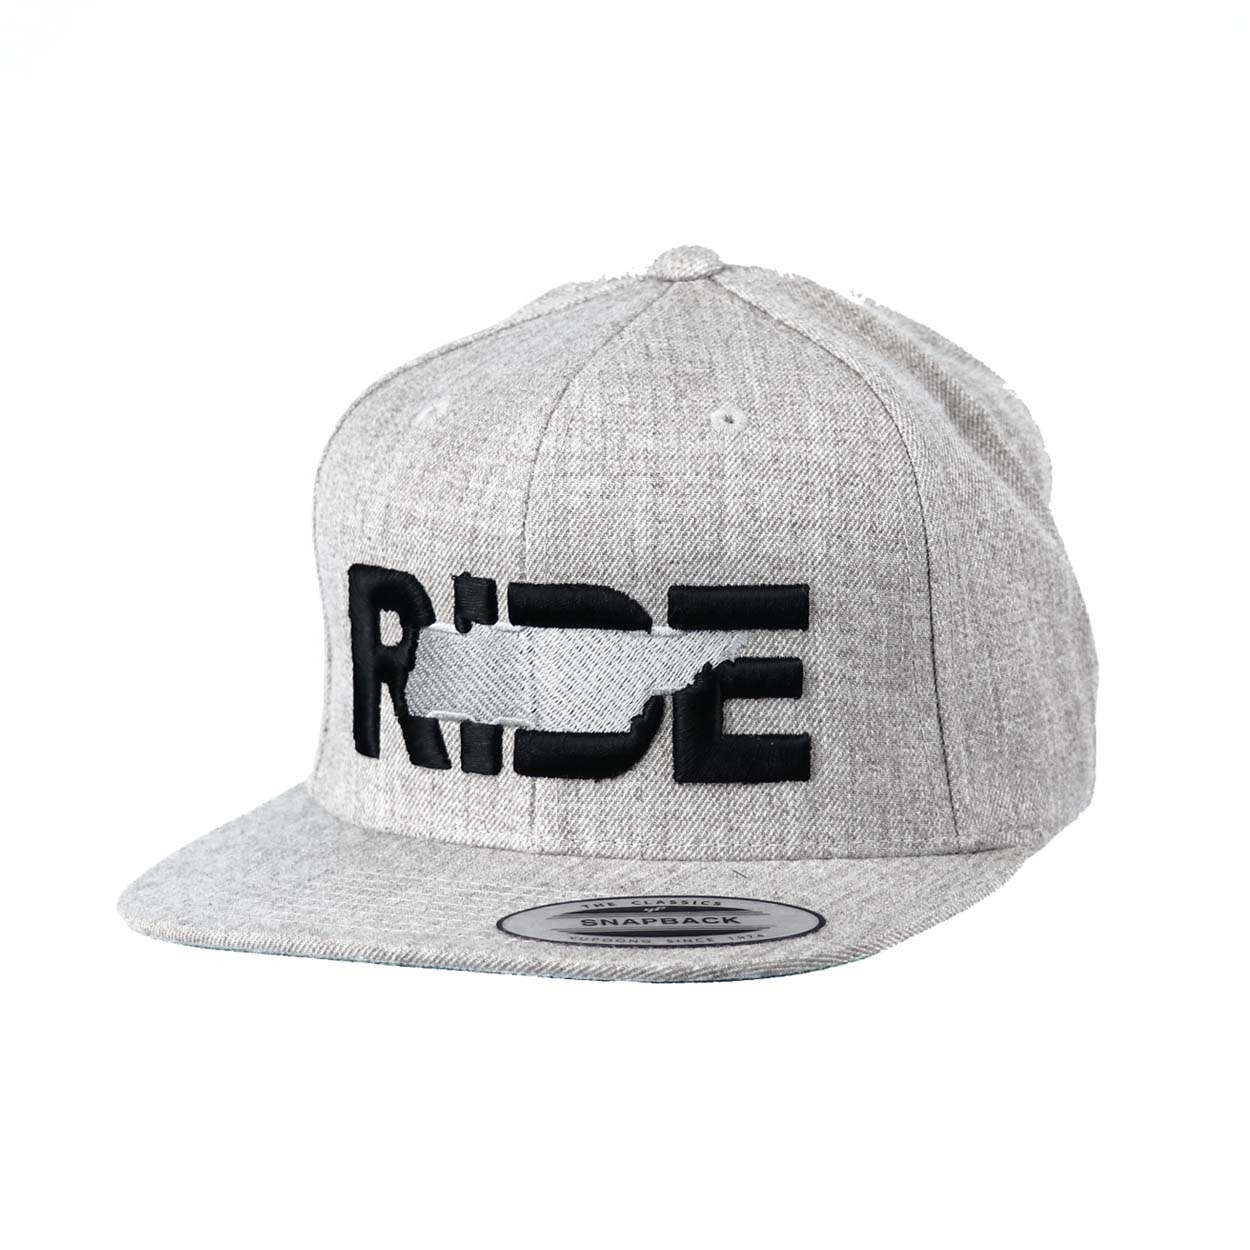 Ride Tennessee Classic Embroidered  Snapback Flat Brim Hat Gray/Black